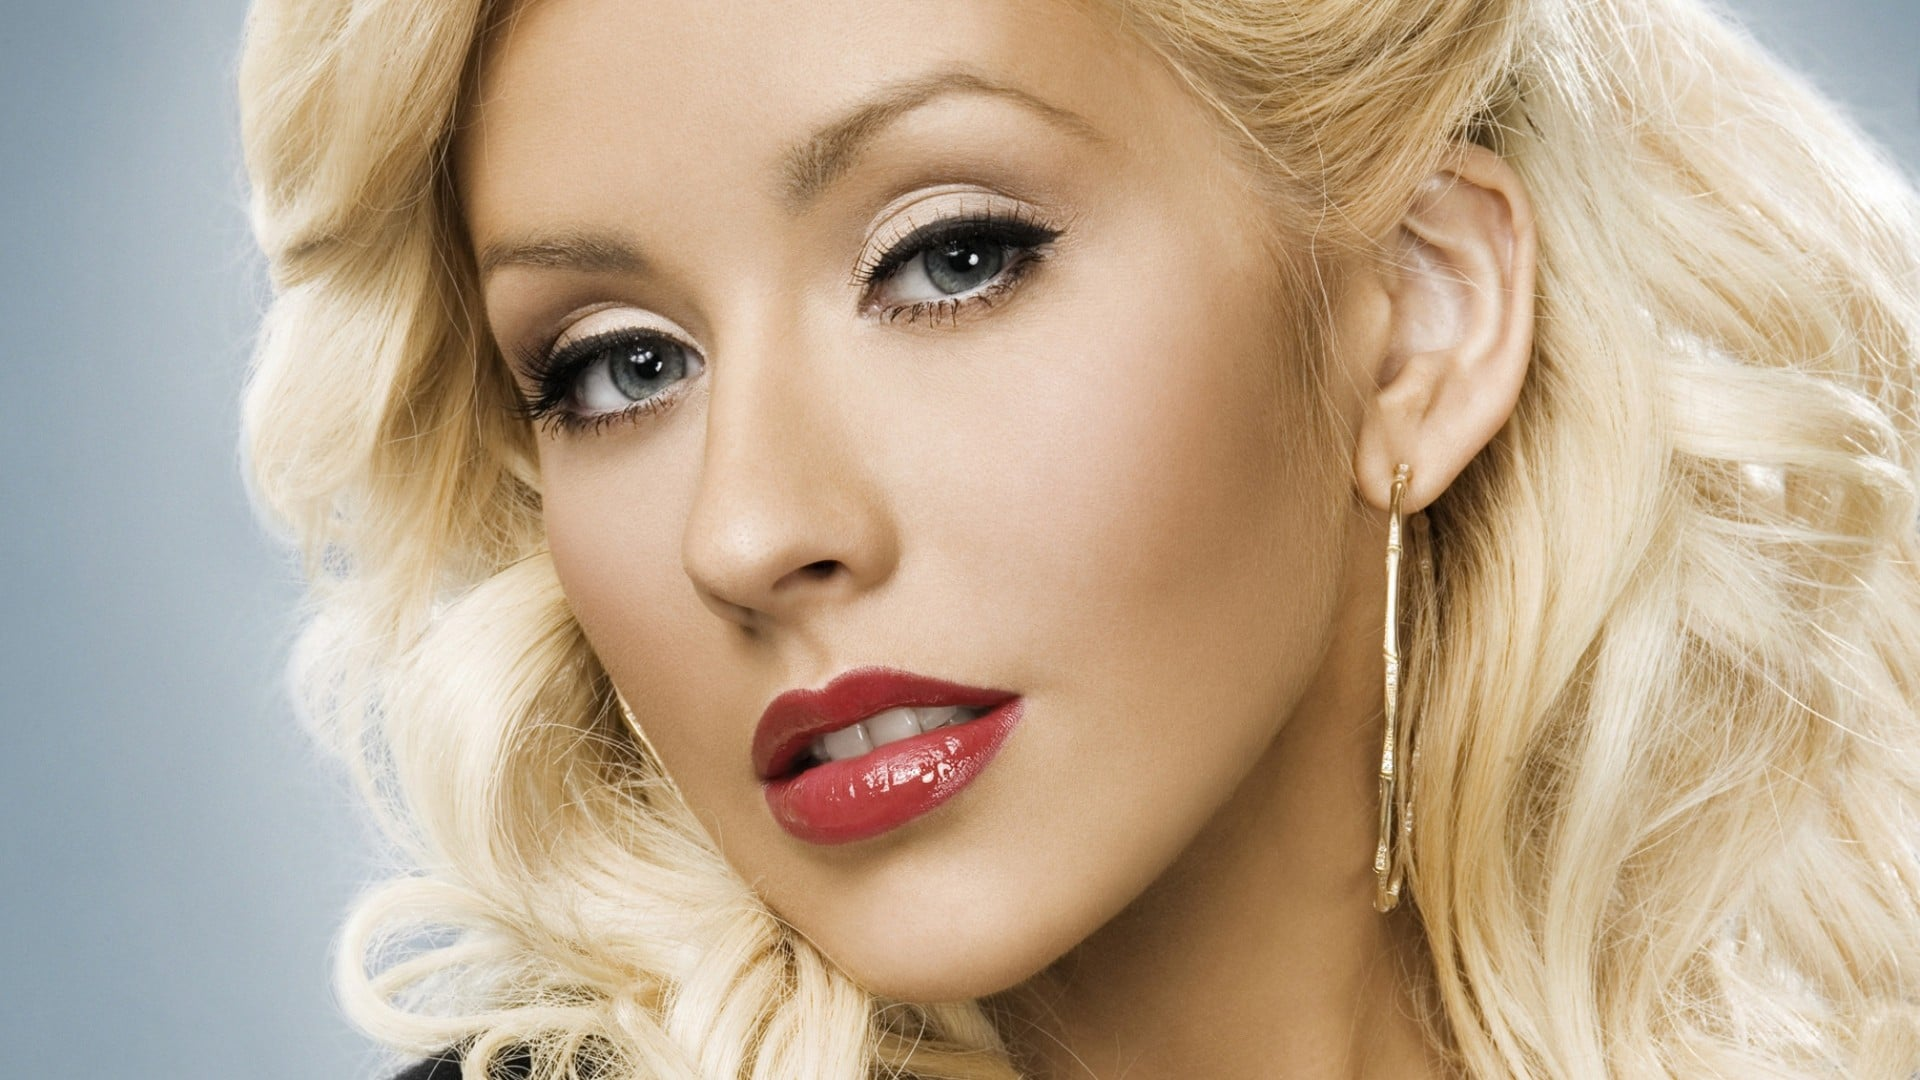 Christina Aguilera Net Worth, Bio 2016 - Richest ... Christina Aguilera